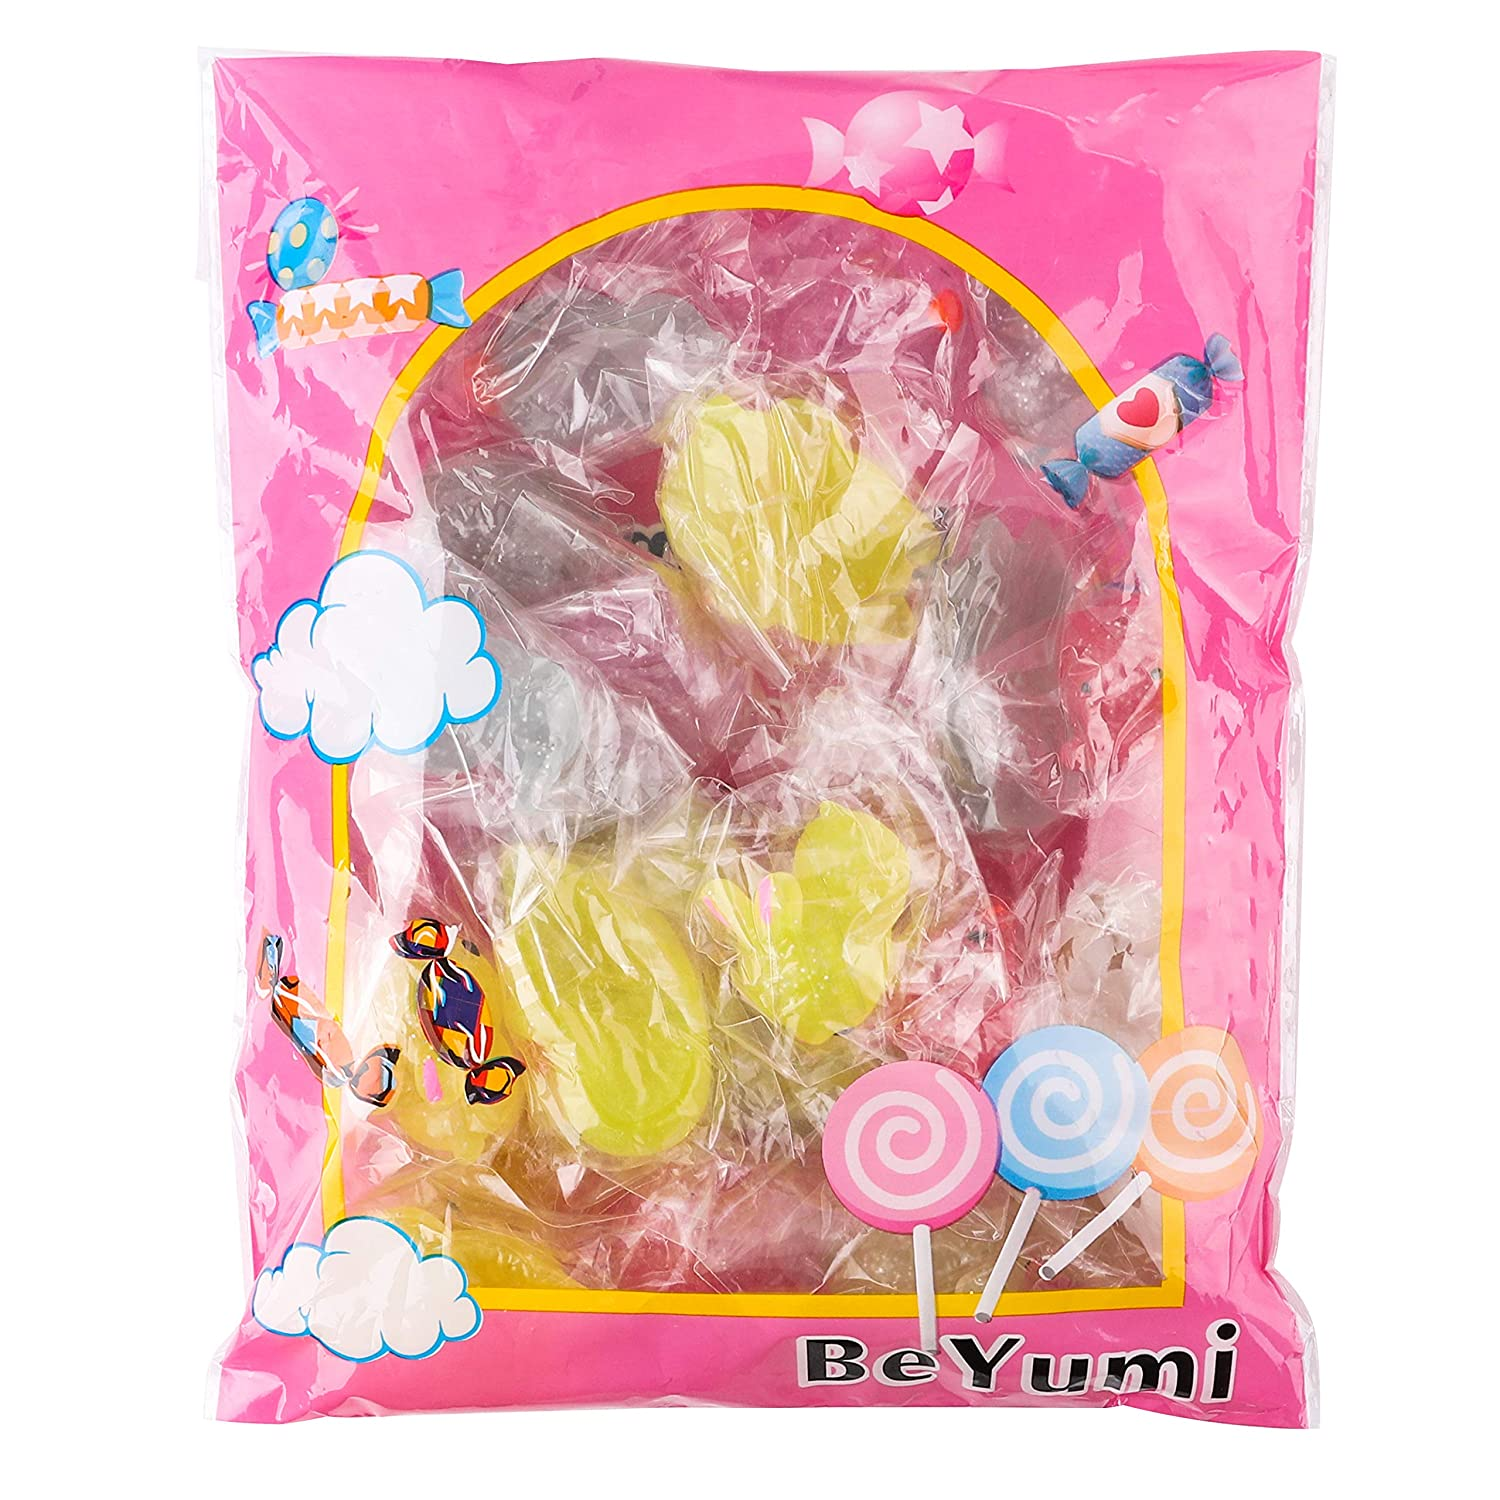 BEYUMI 25 Pcs 2nd Generation Mochi Glitter Mini Animals Squishies Kawaii Cute Soft Stretchy Toys